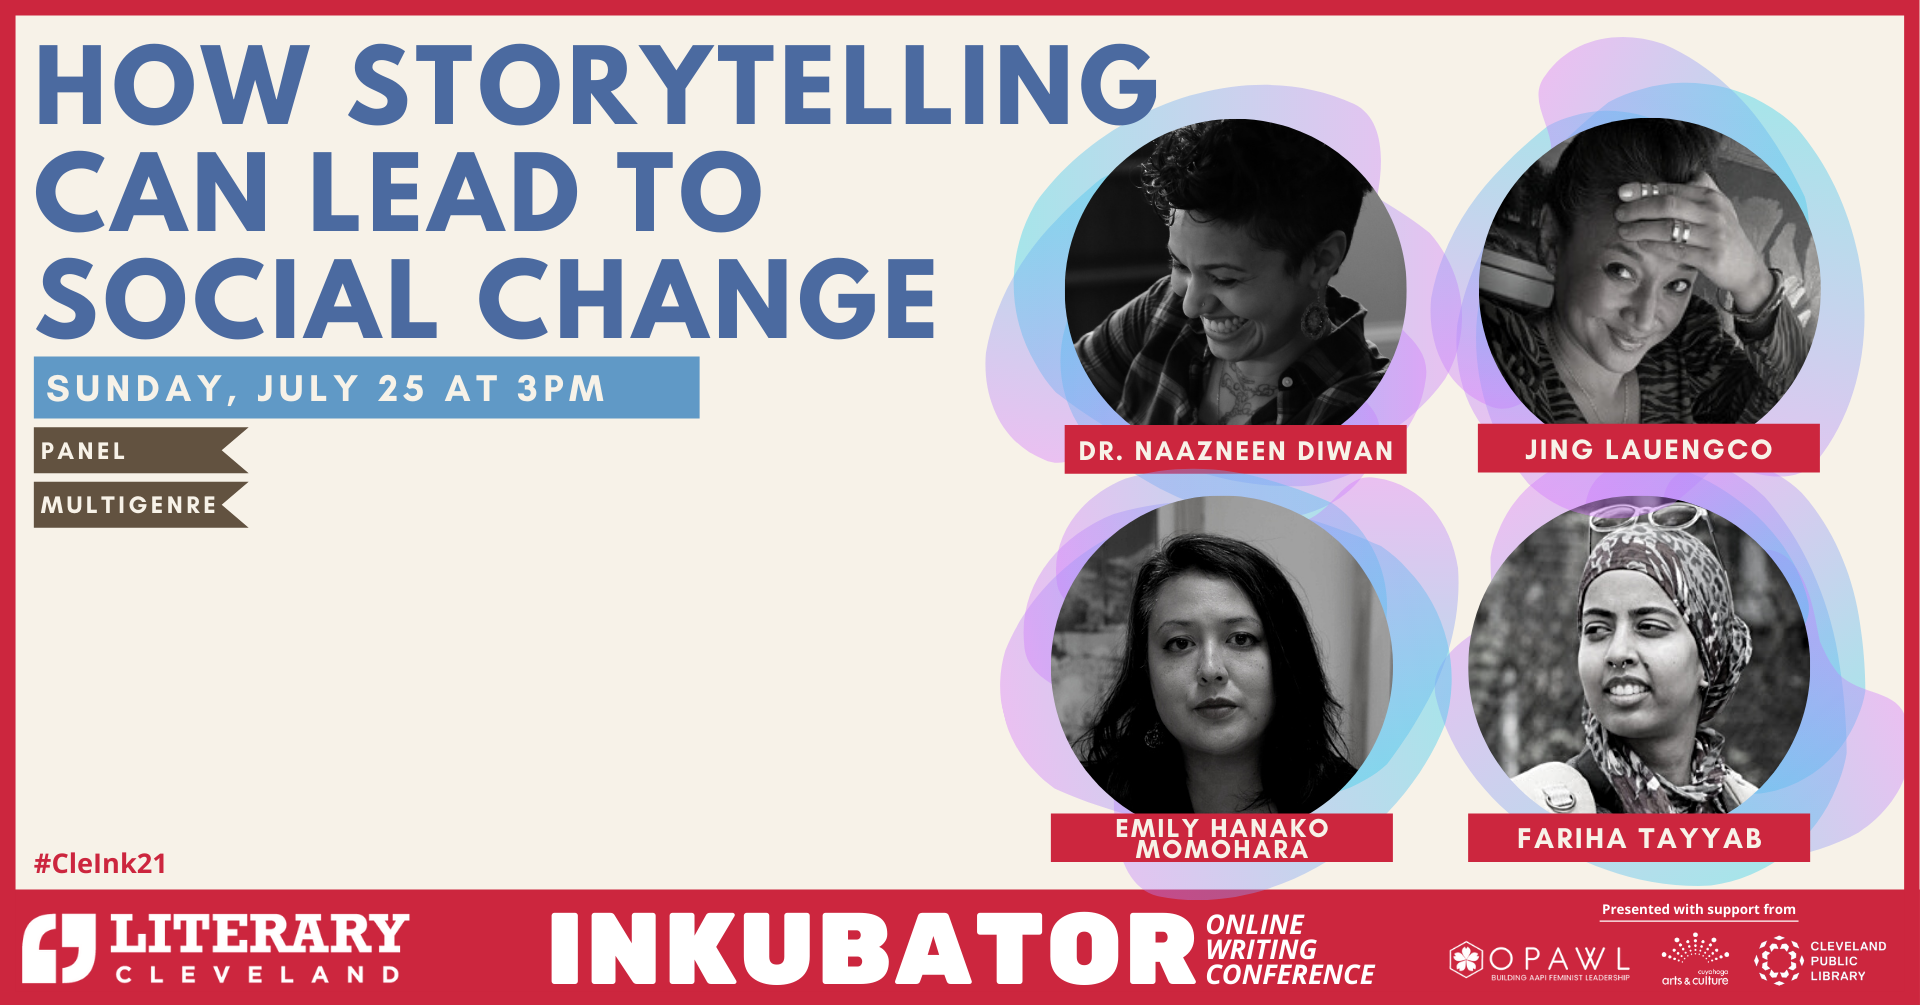 How storytelling can lead to social change, Sunday, July 25 at 3pm, panel, multigenre